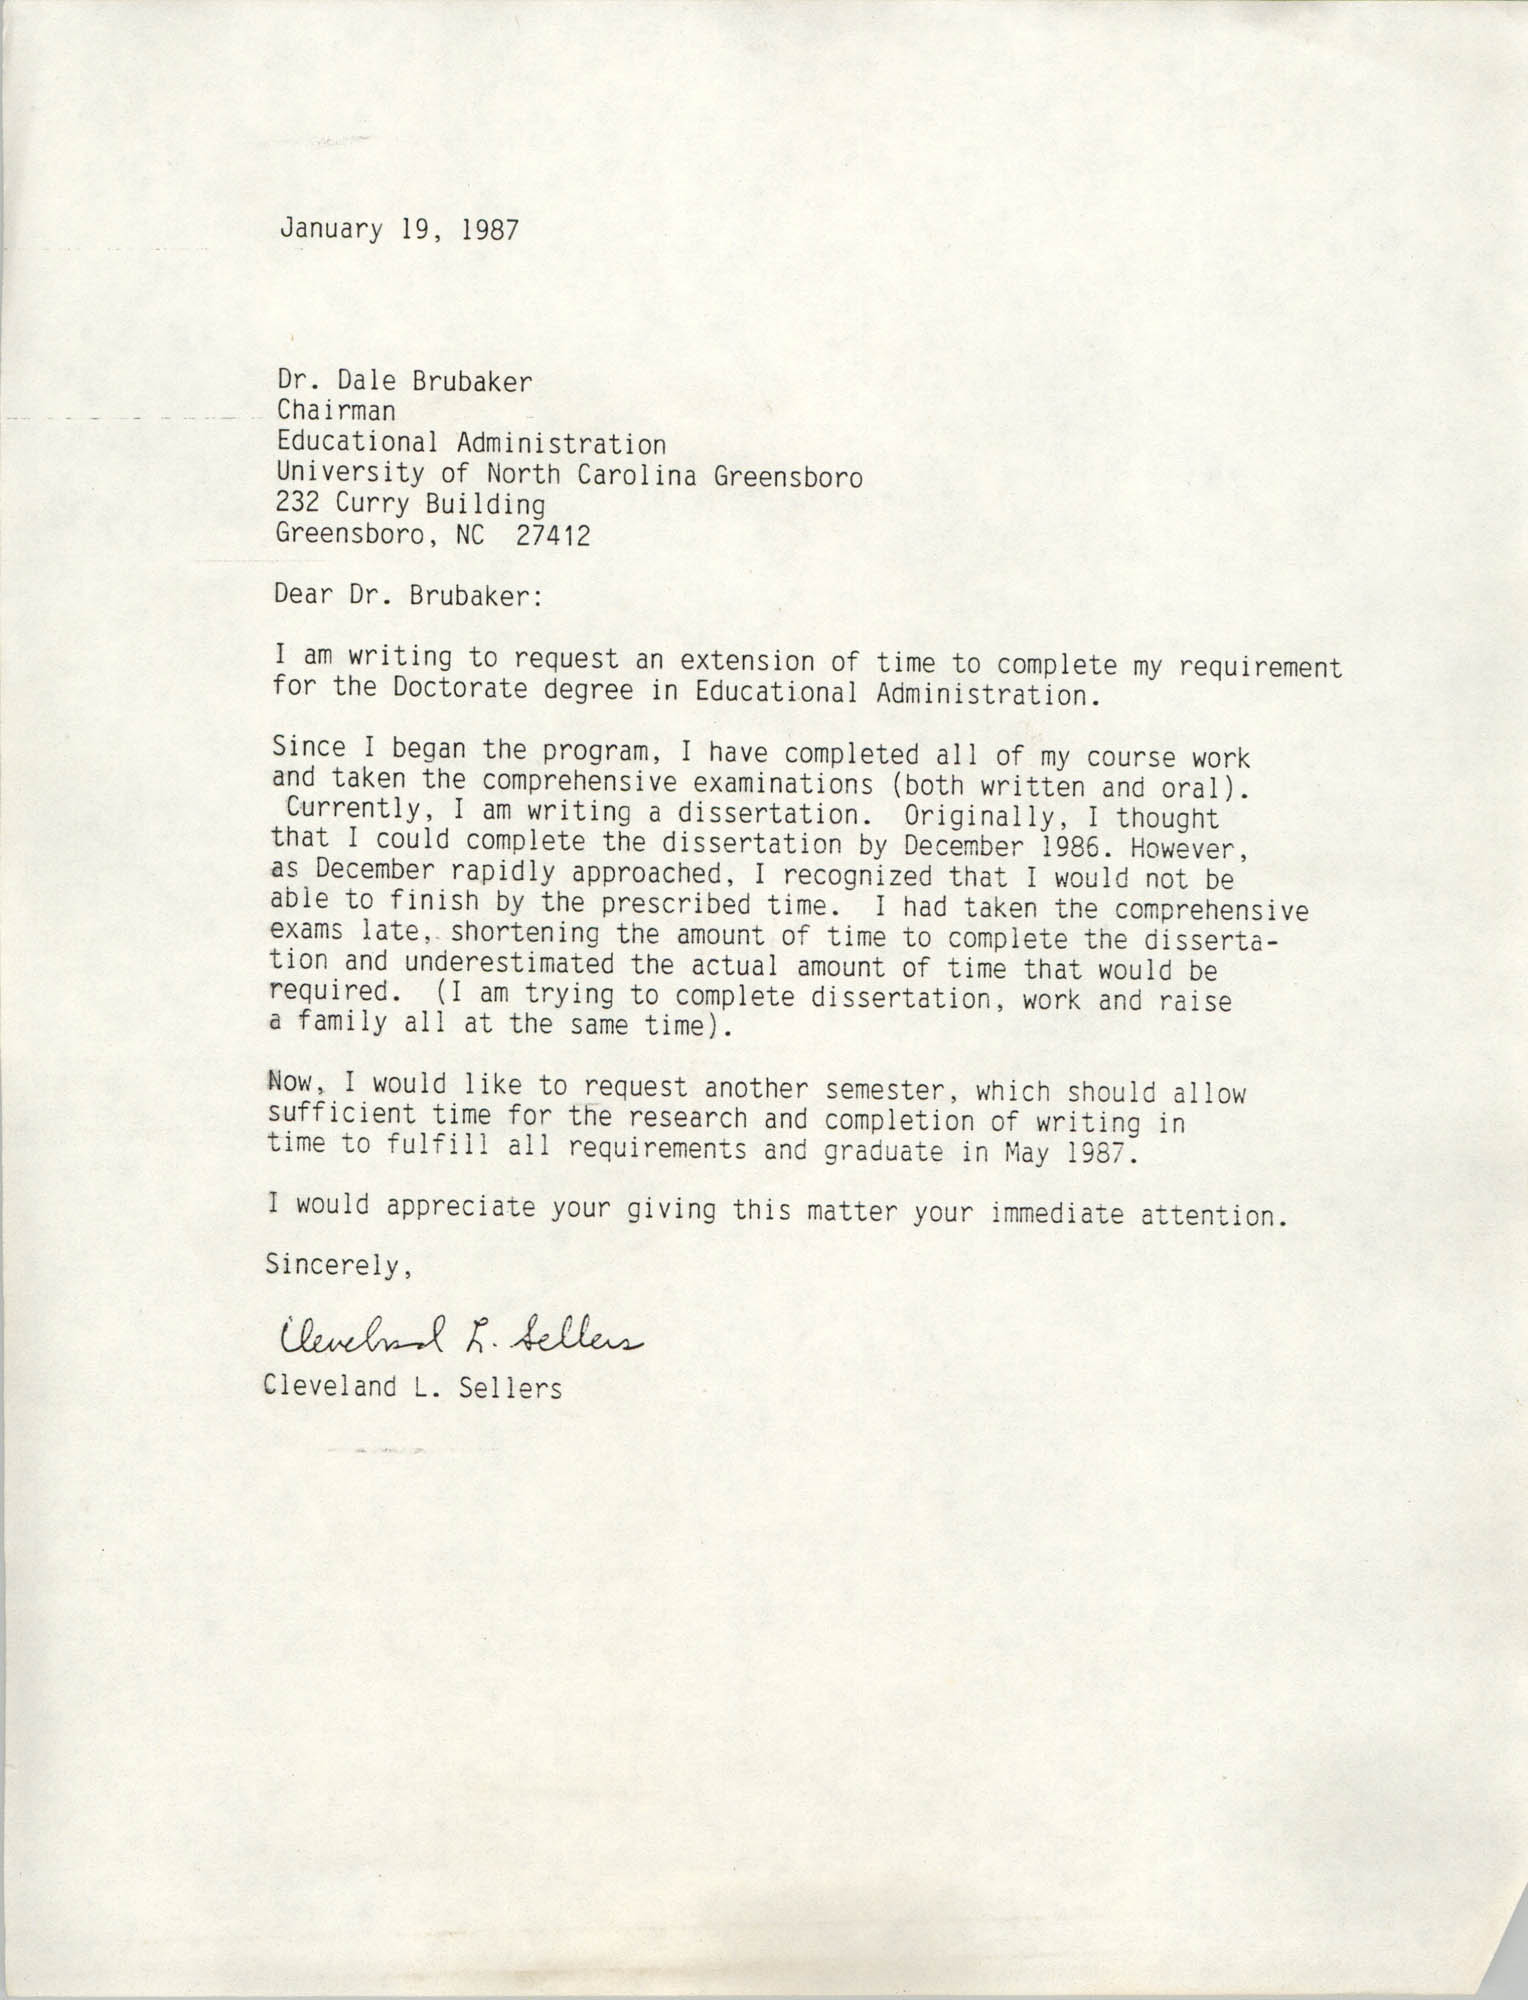 Letter from Cleveland Sellers to Dale Brubaker, January 19, 1987